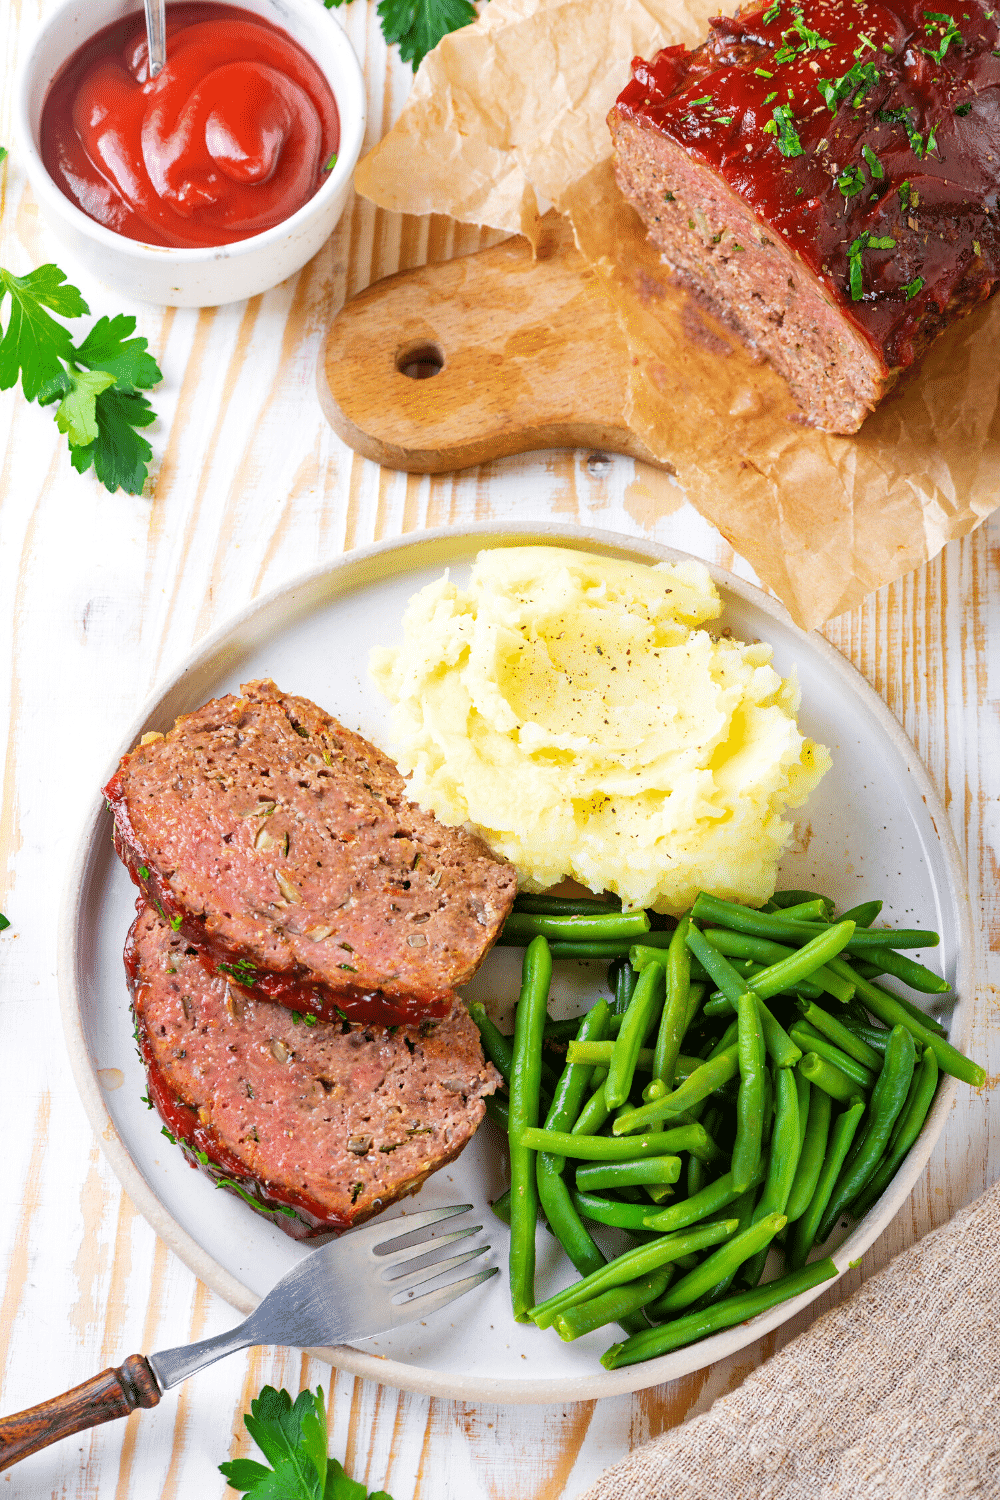 A white plate with two slices of meatloaf mashed potatoes and green beans. The whole meatloaf is behind the plate on a piece of white parchment paper on a wooden cutting board.